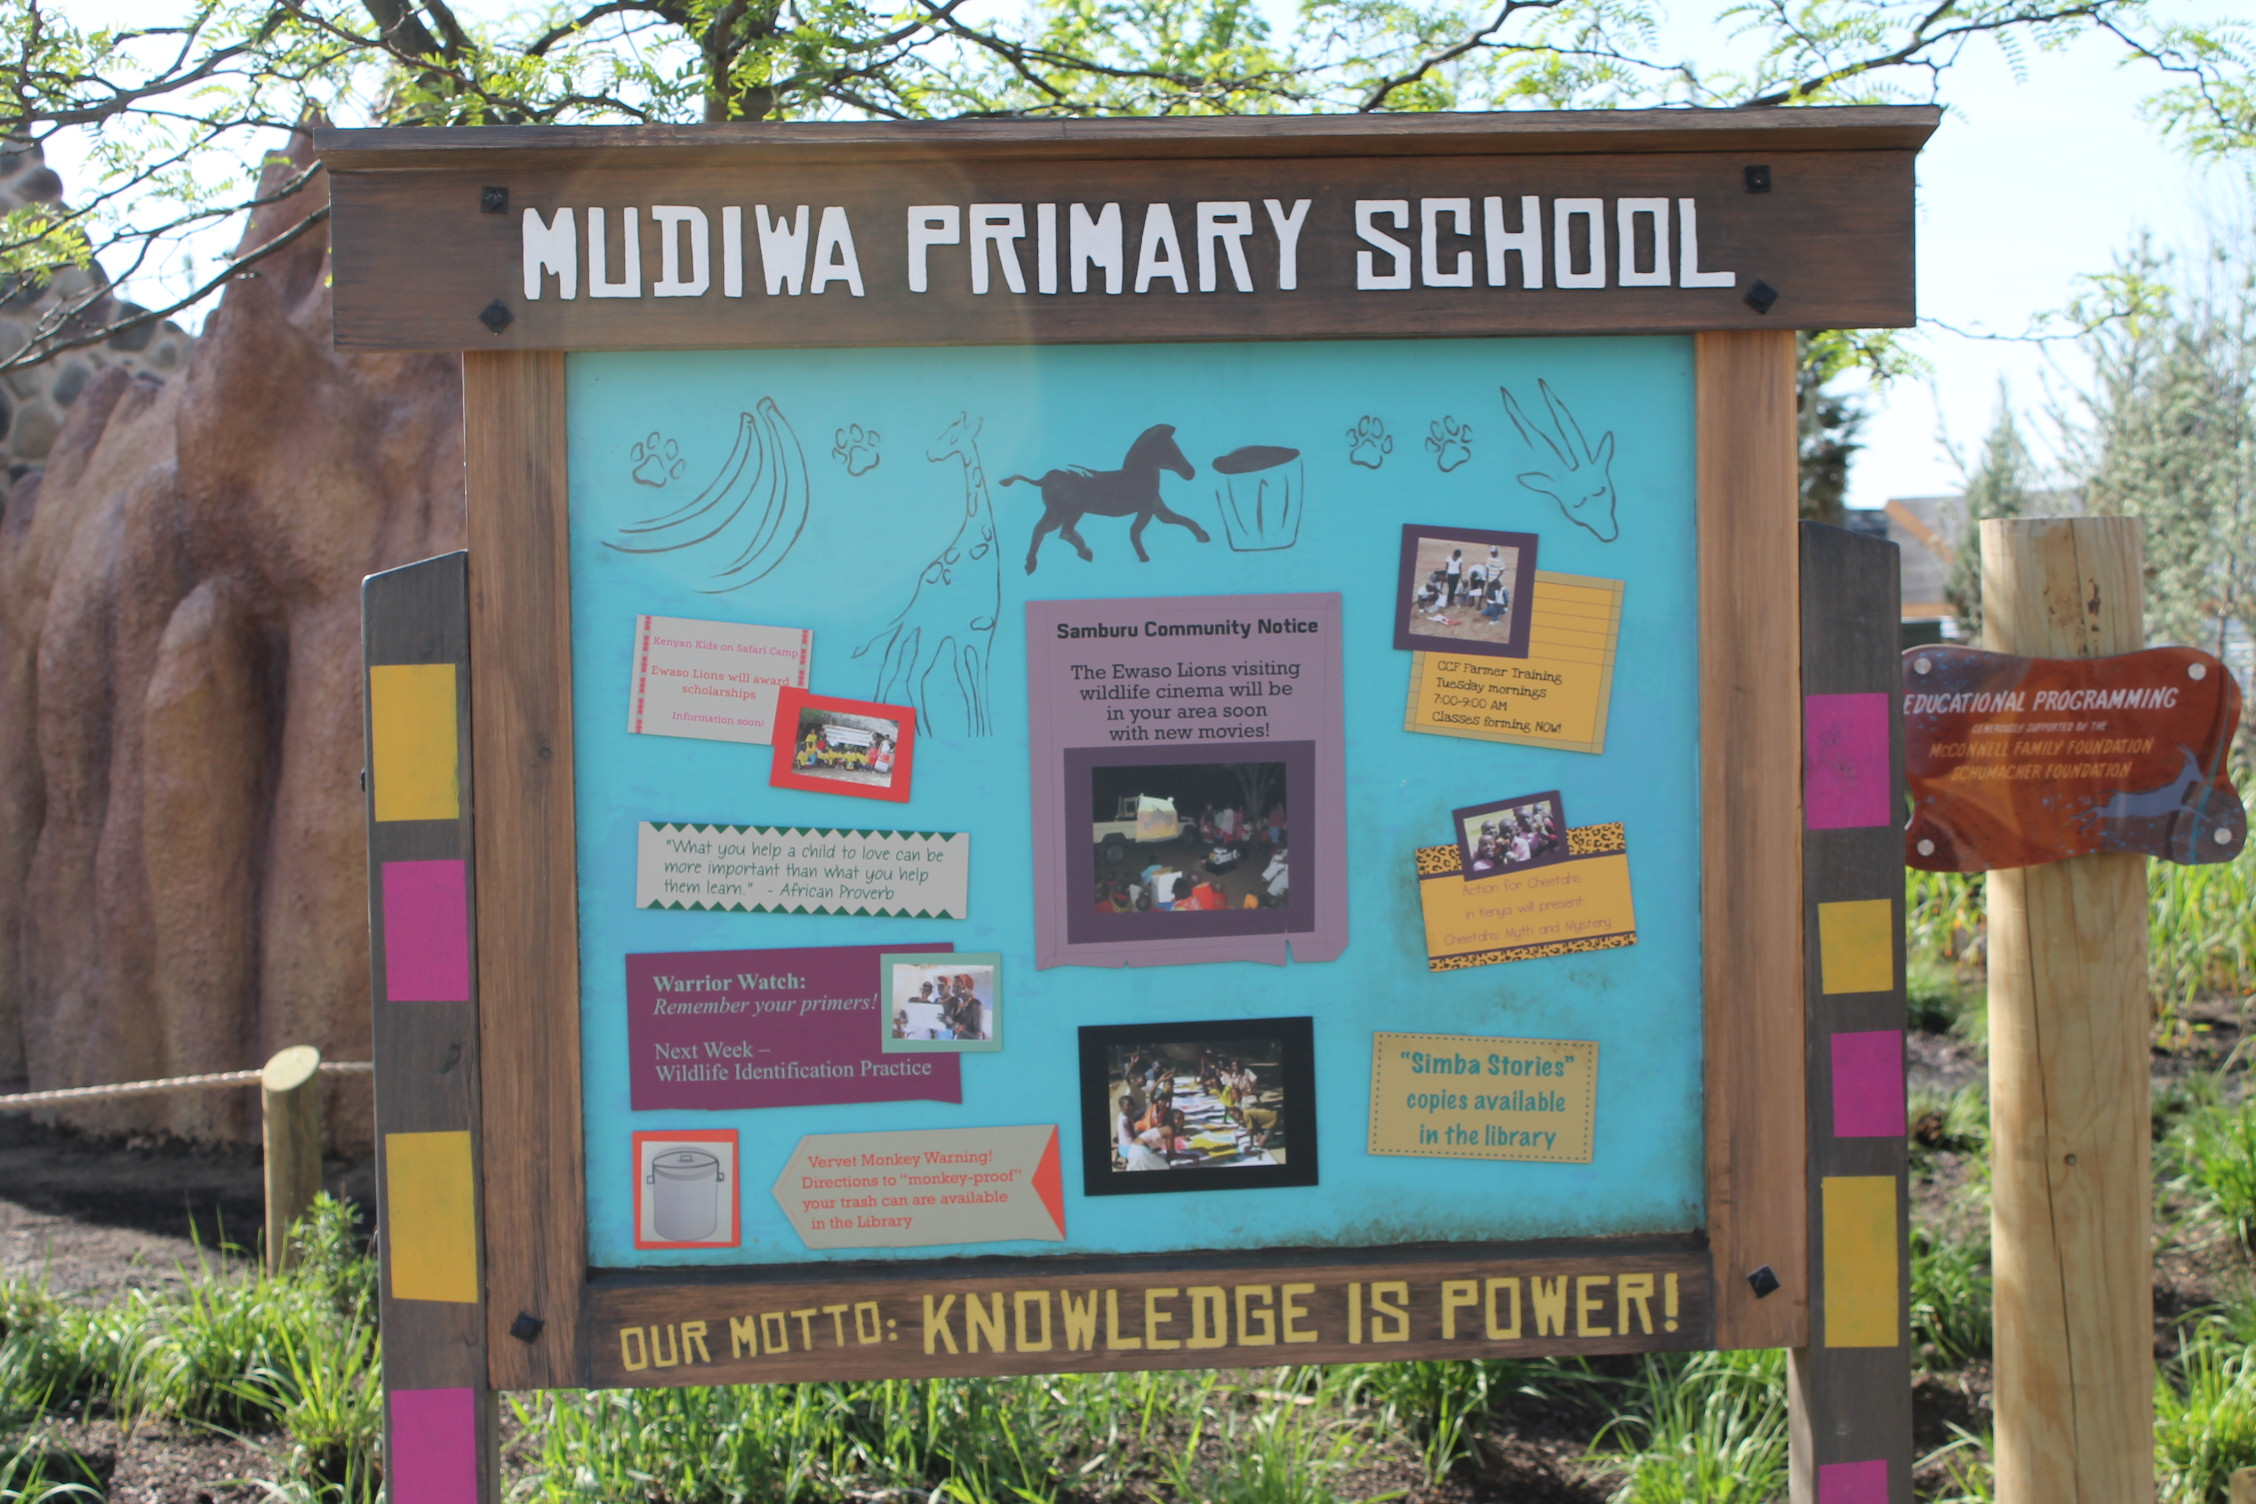 Clever school house bulletin boards touches on some of the conservation programs CZA supports.